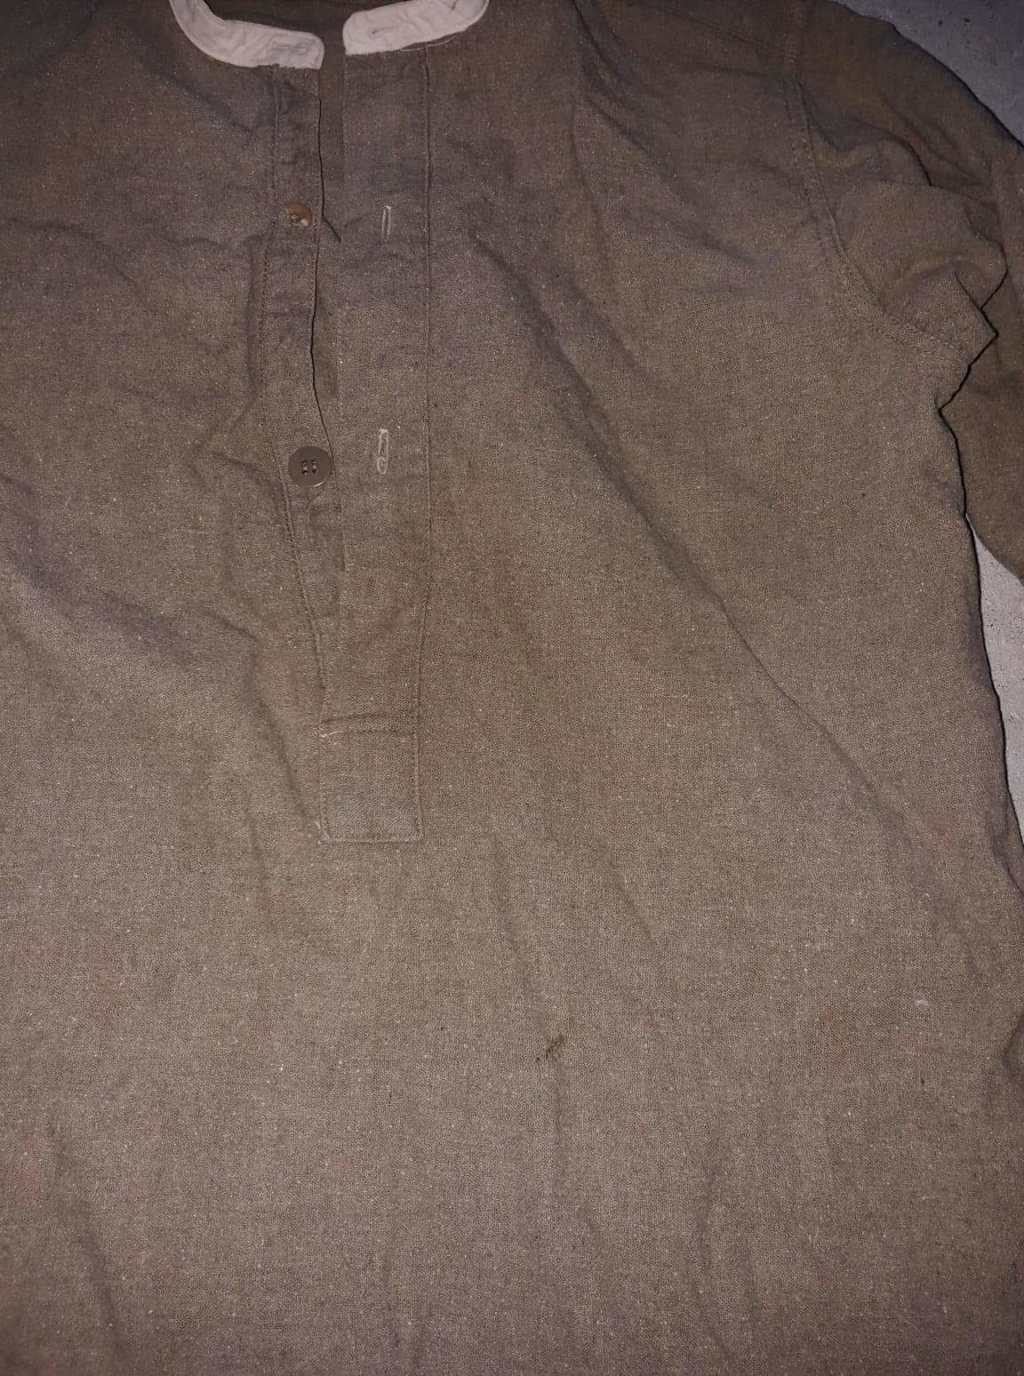 Chemise troupe anglaise seconde guerre ? Receiv25